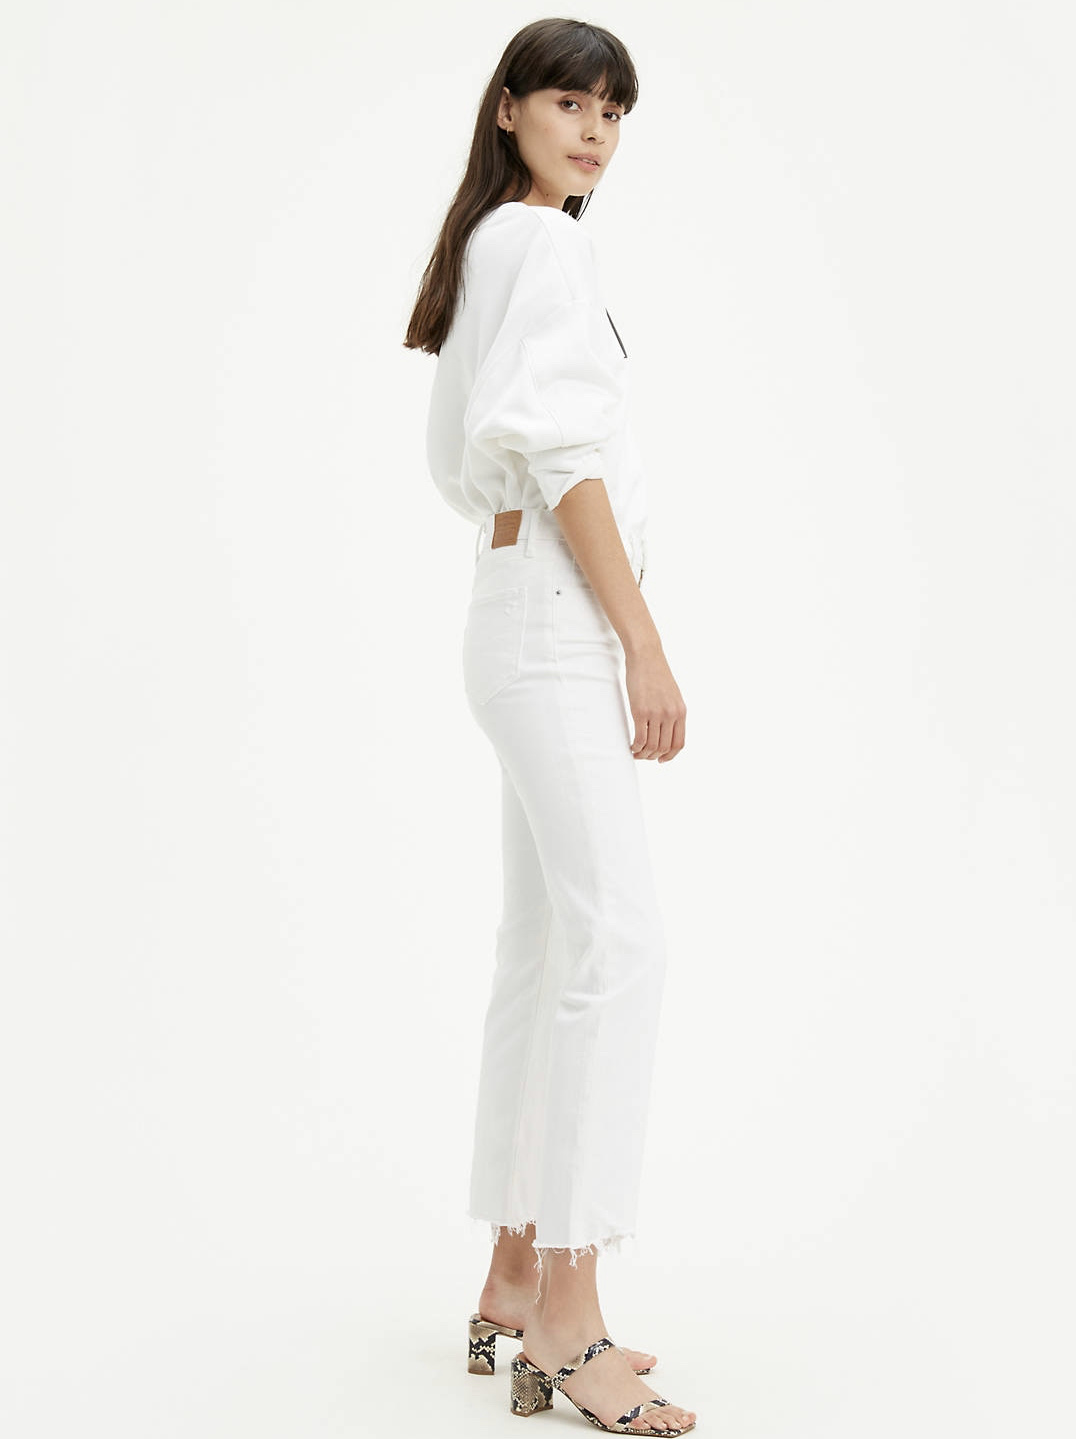 Levi's 724 High Rise Crop - Won Me Over